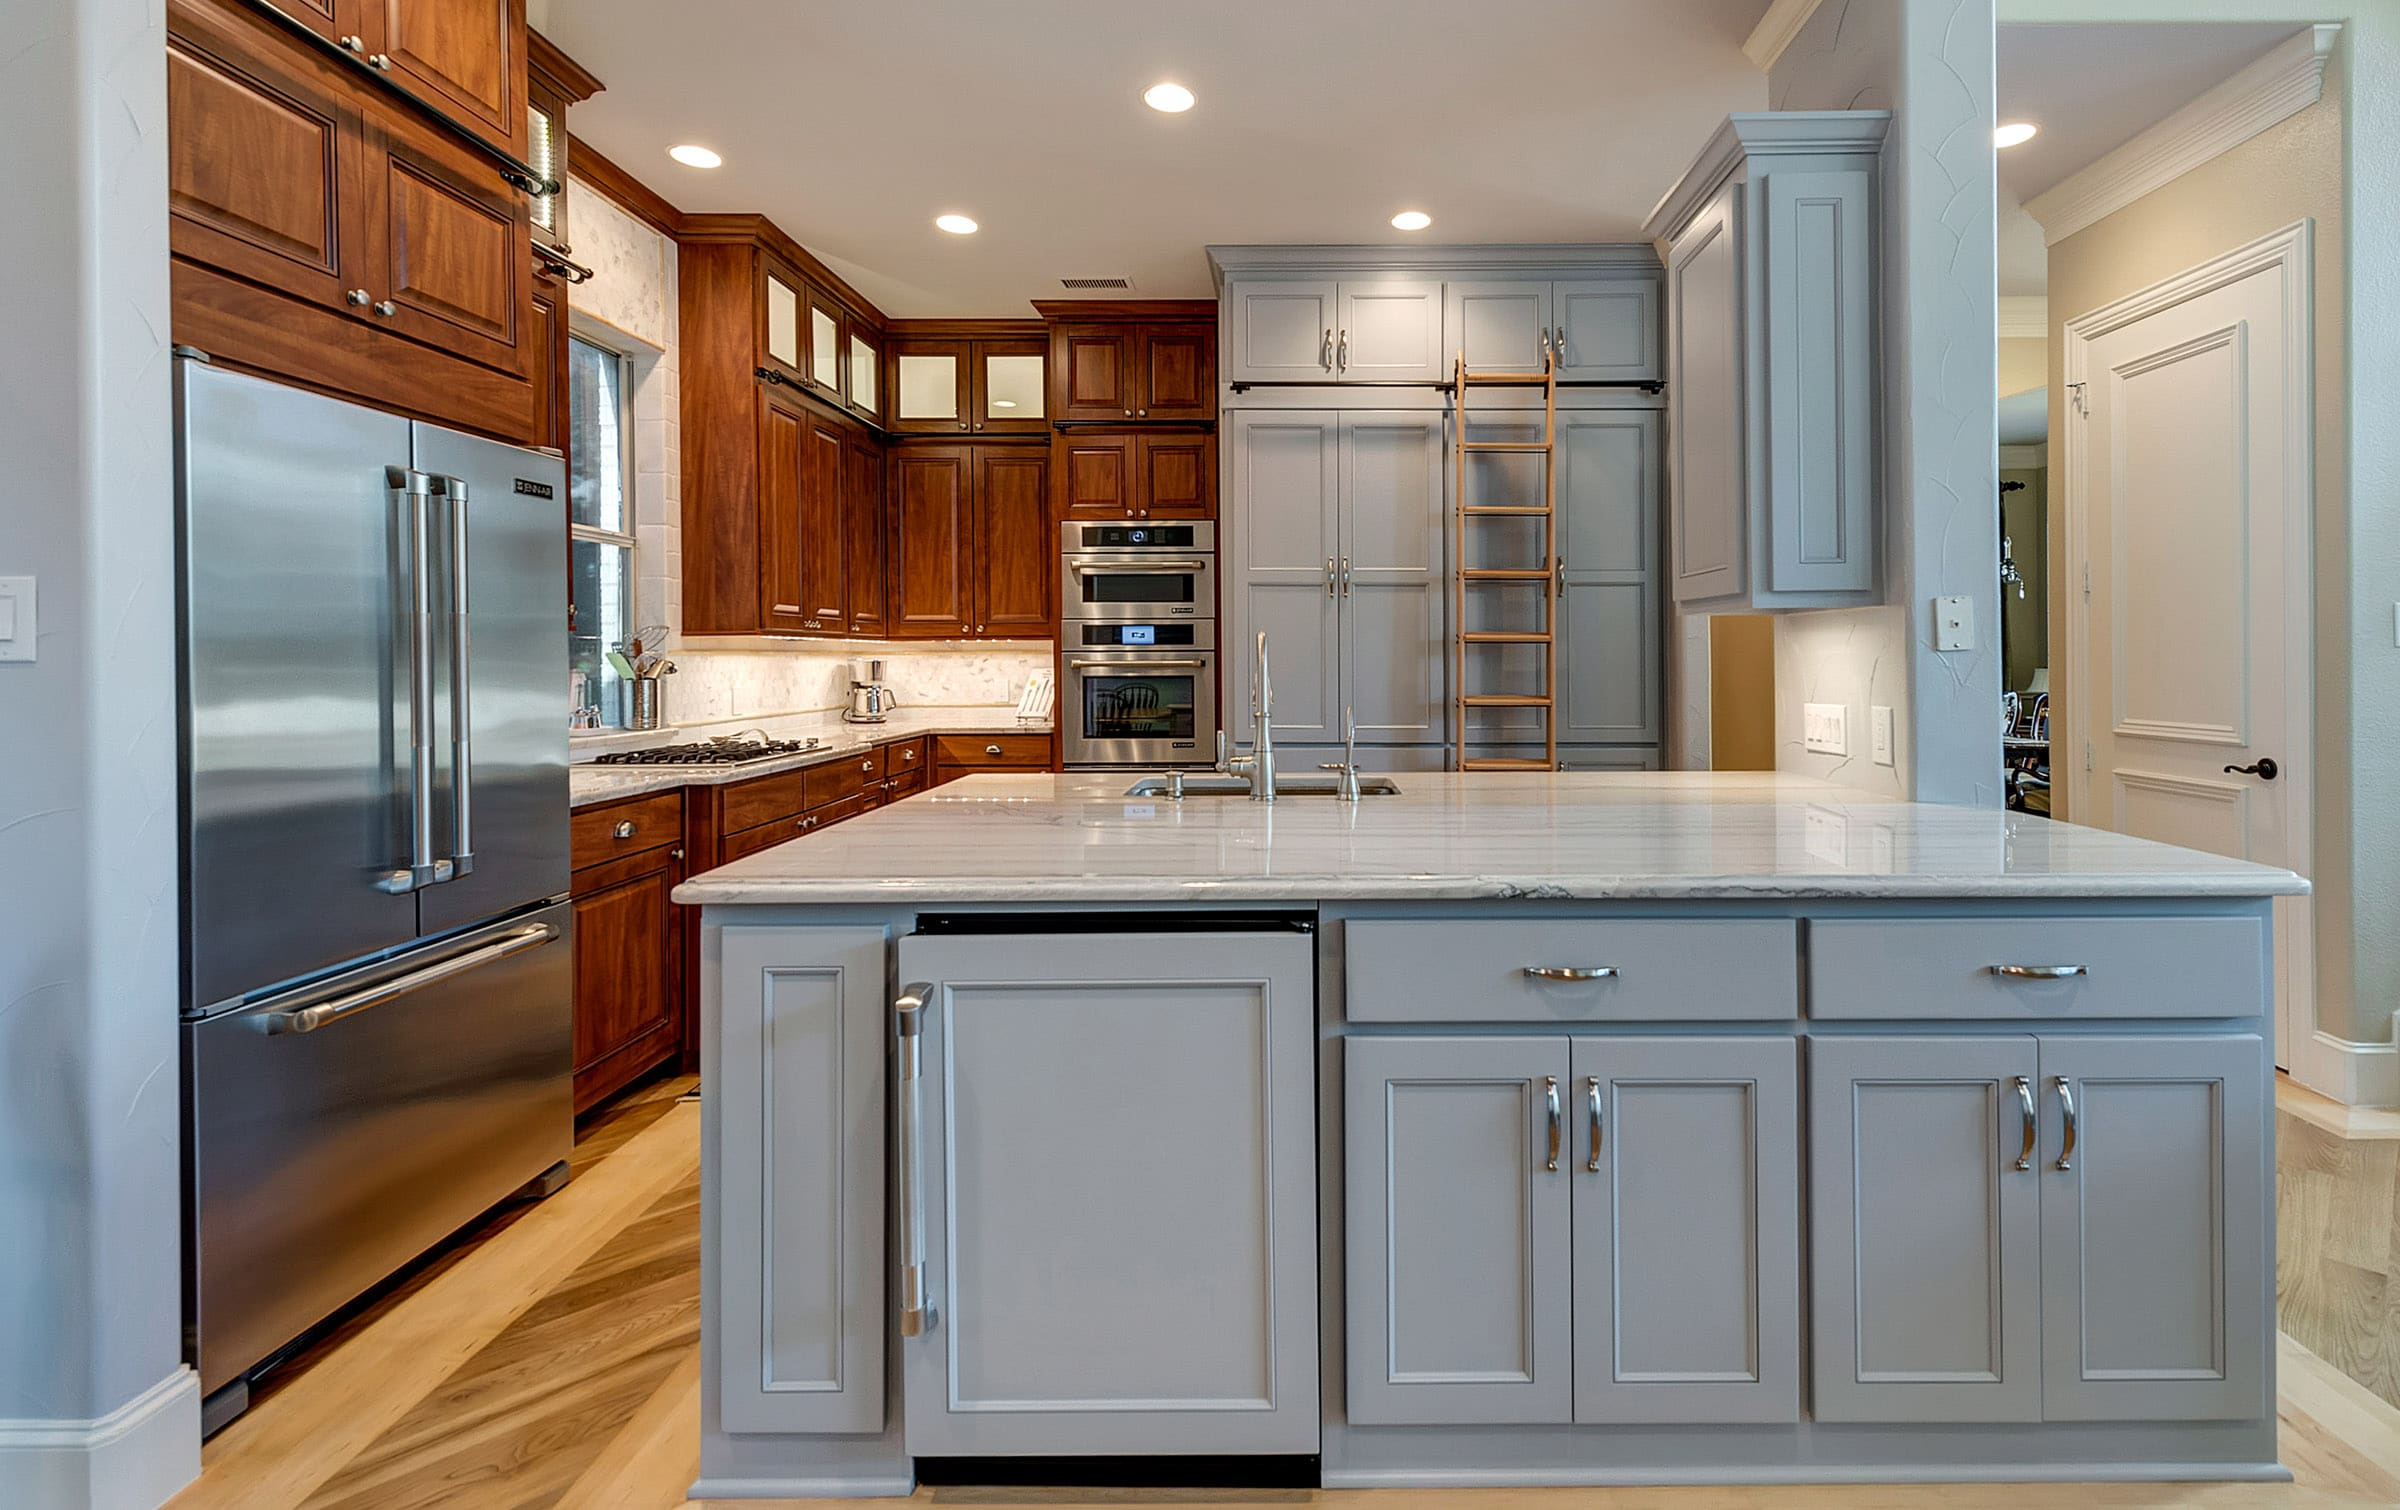 8 Tips for Choosing the Right Qualified Contractor for Your Next Remodel